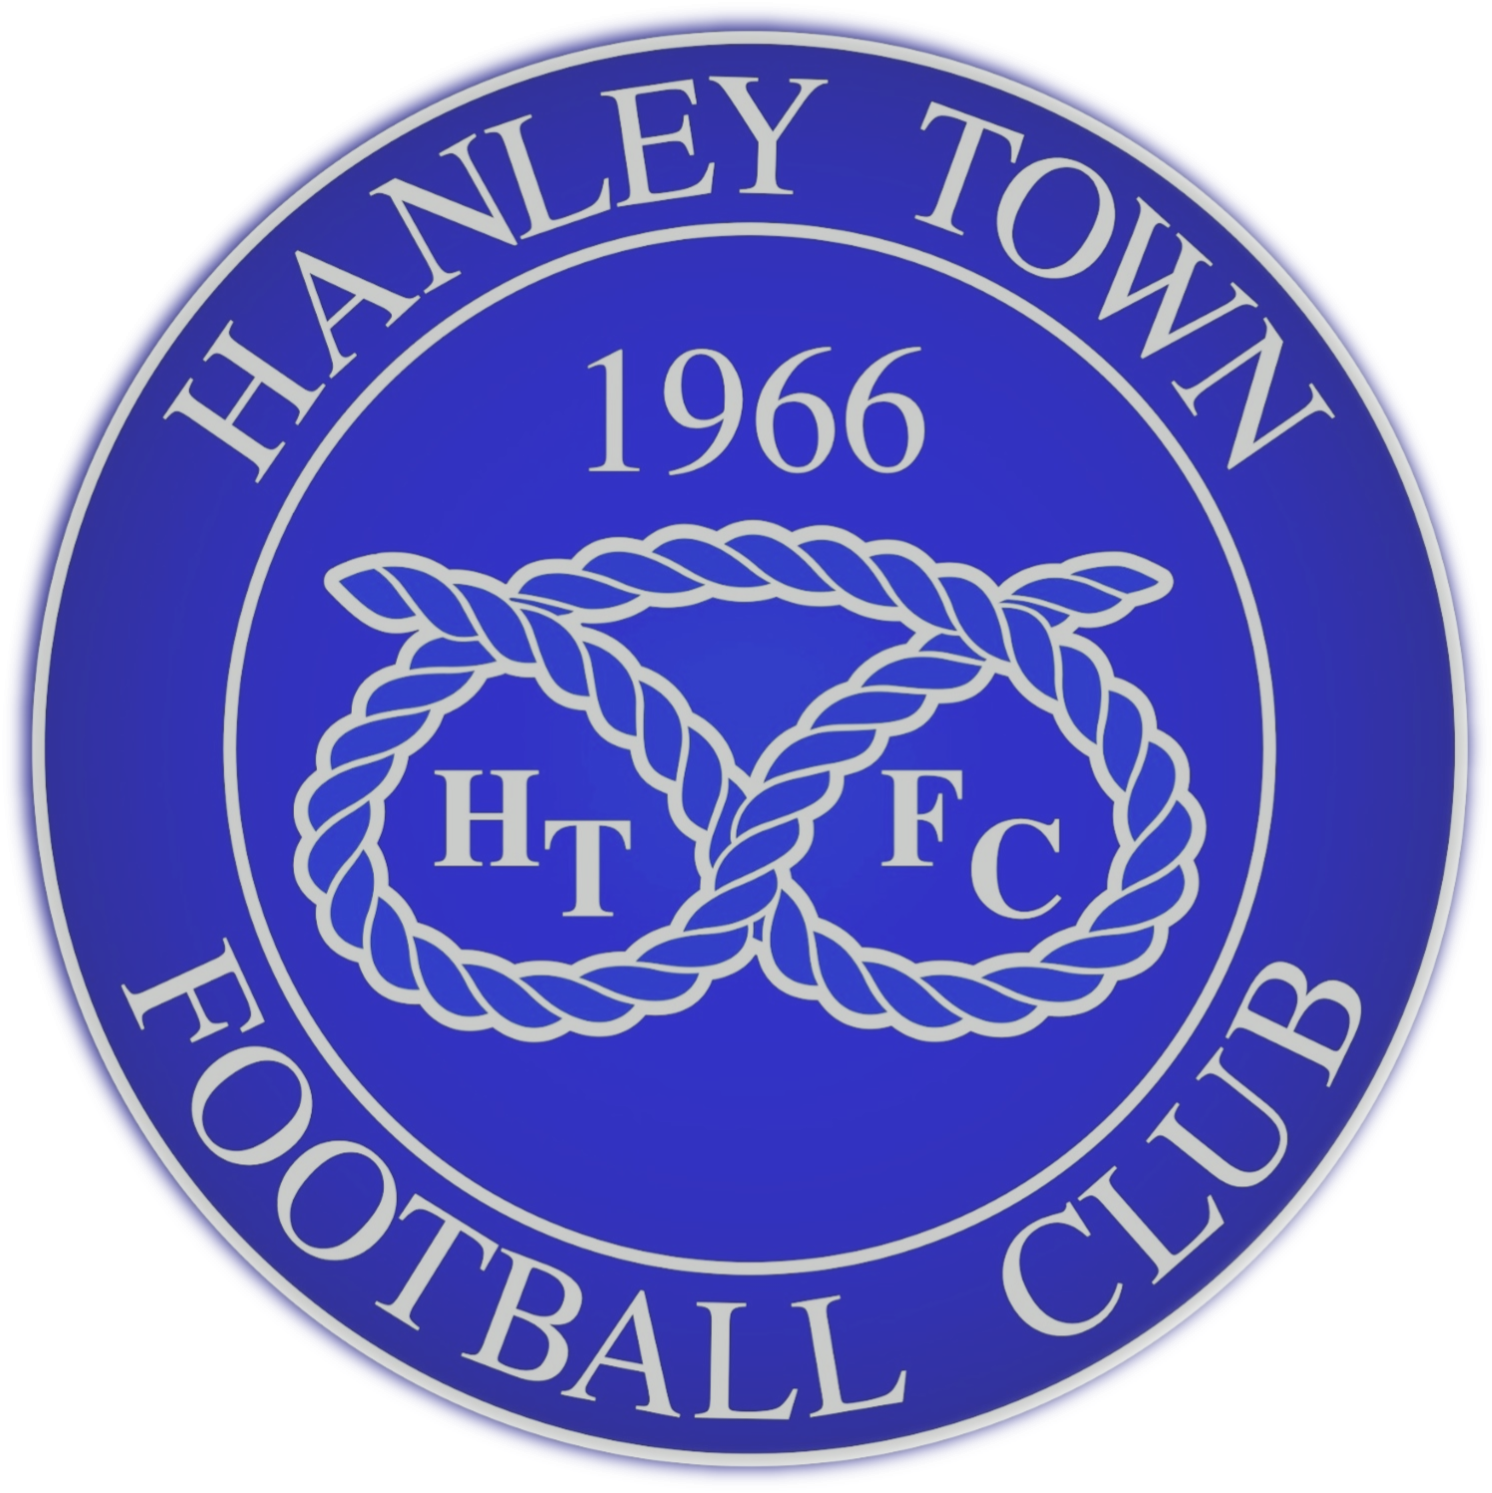 Hanley Town Football Club